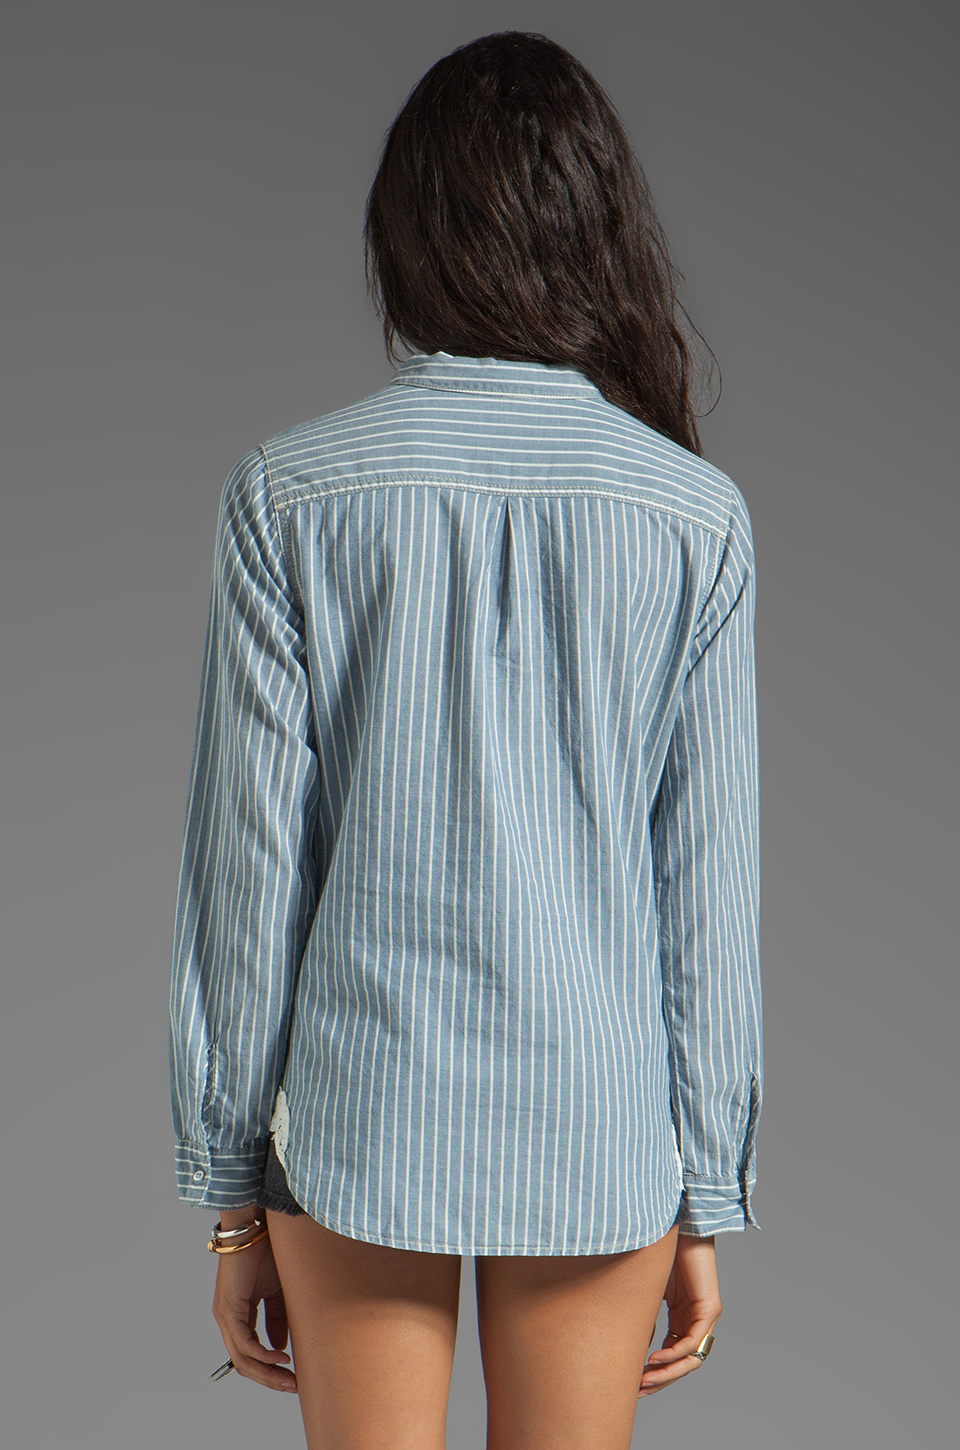 C&C California Stripe Shirt in Chambray Multi